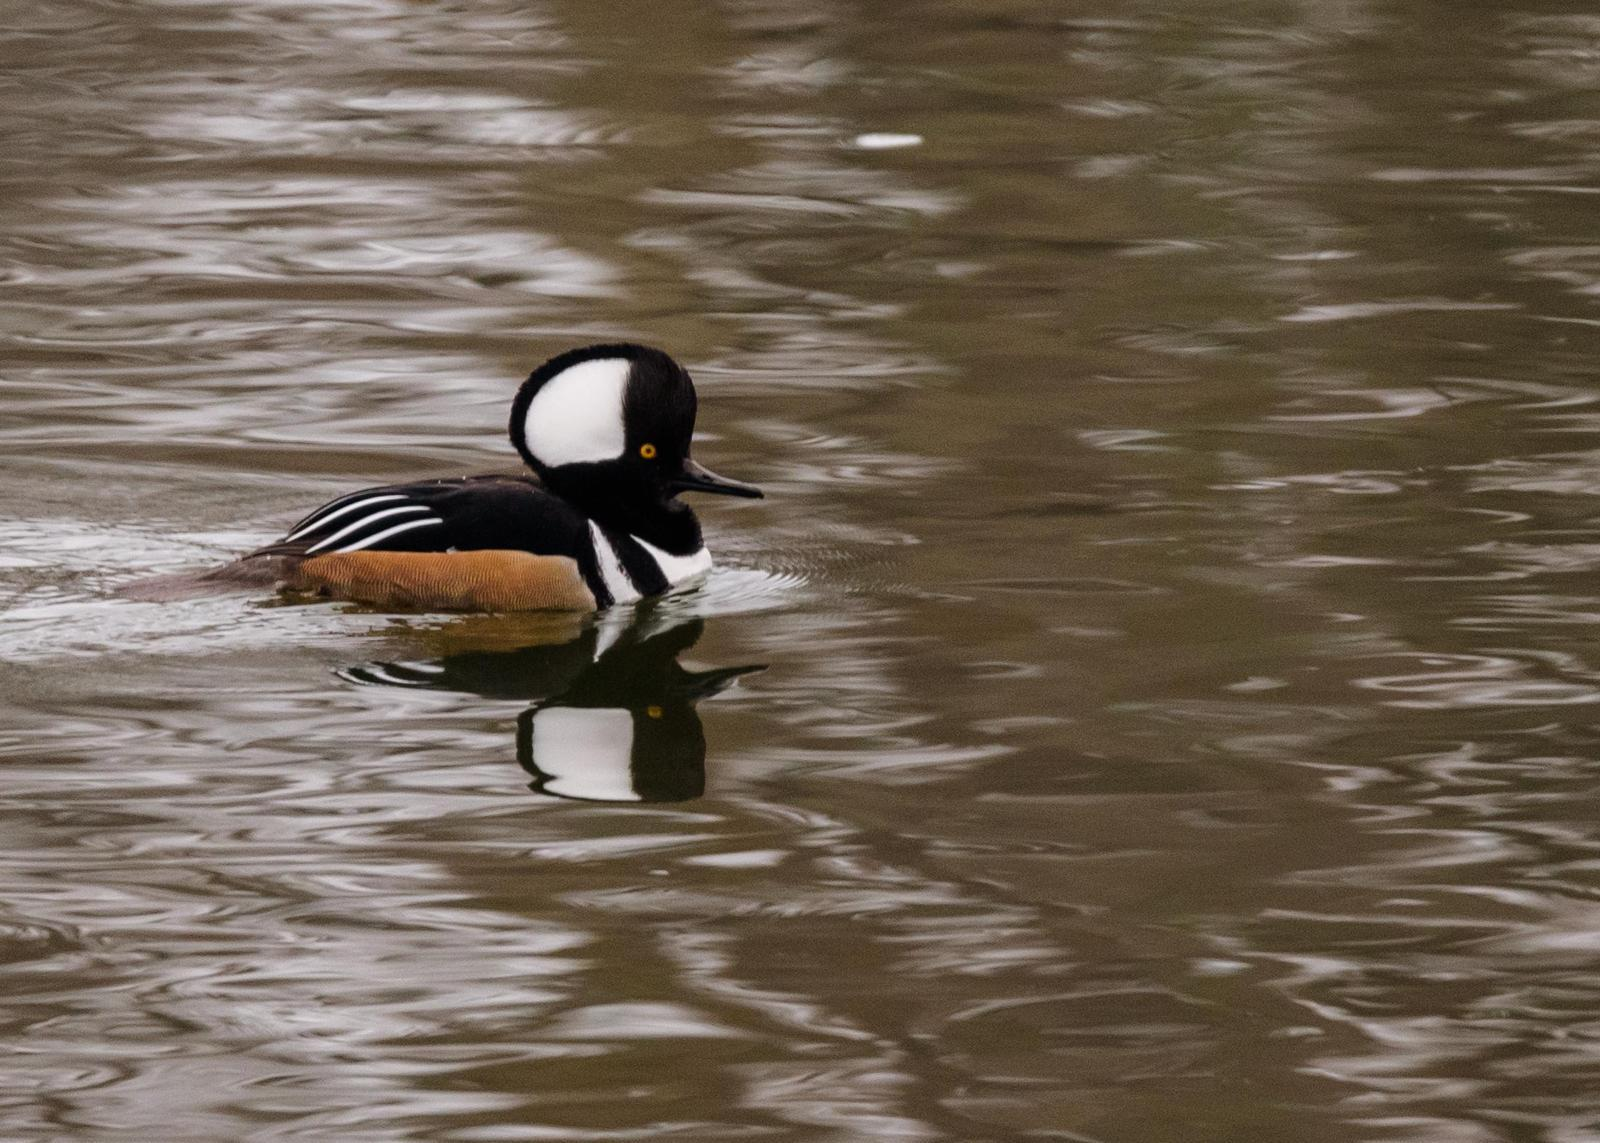 Hooded Merganser Photo by Keshava Mysore